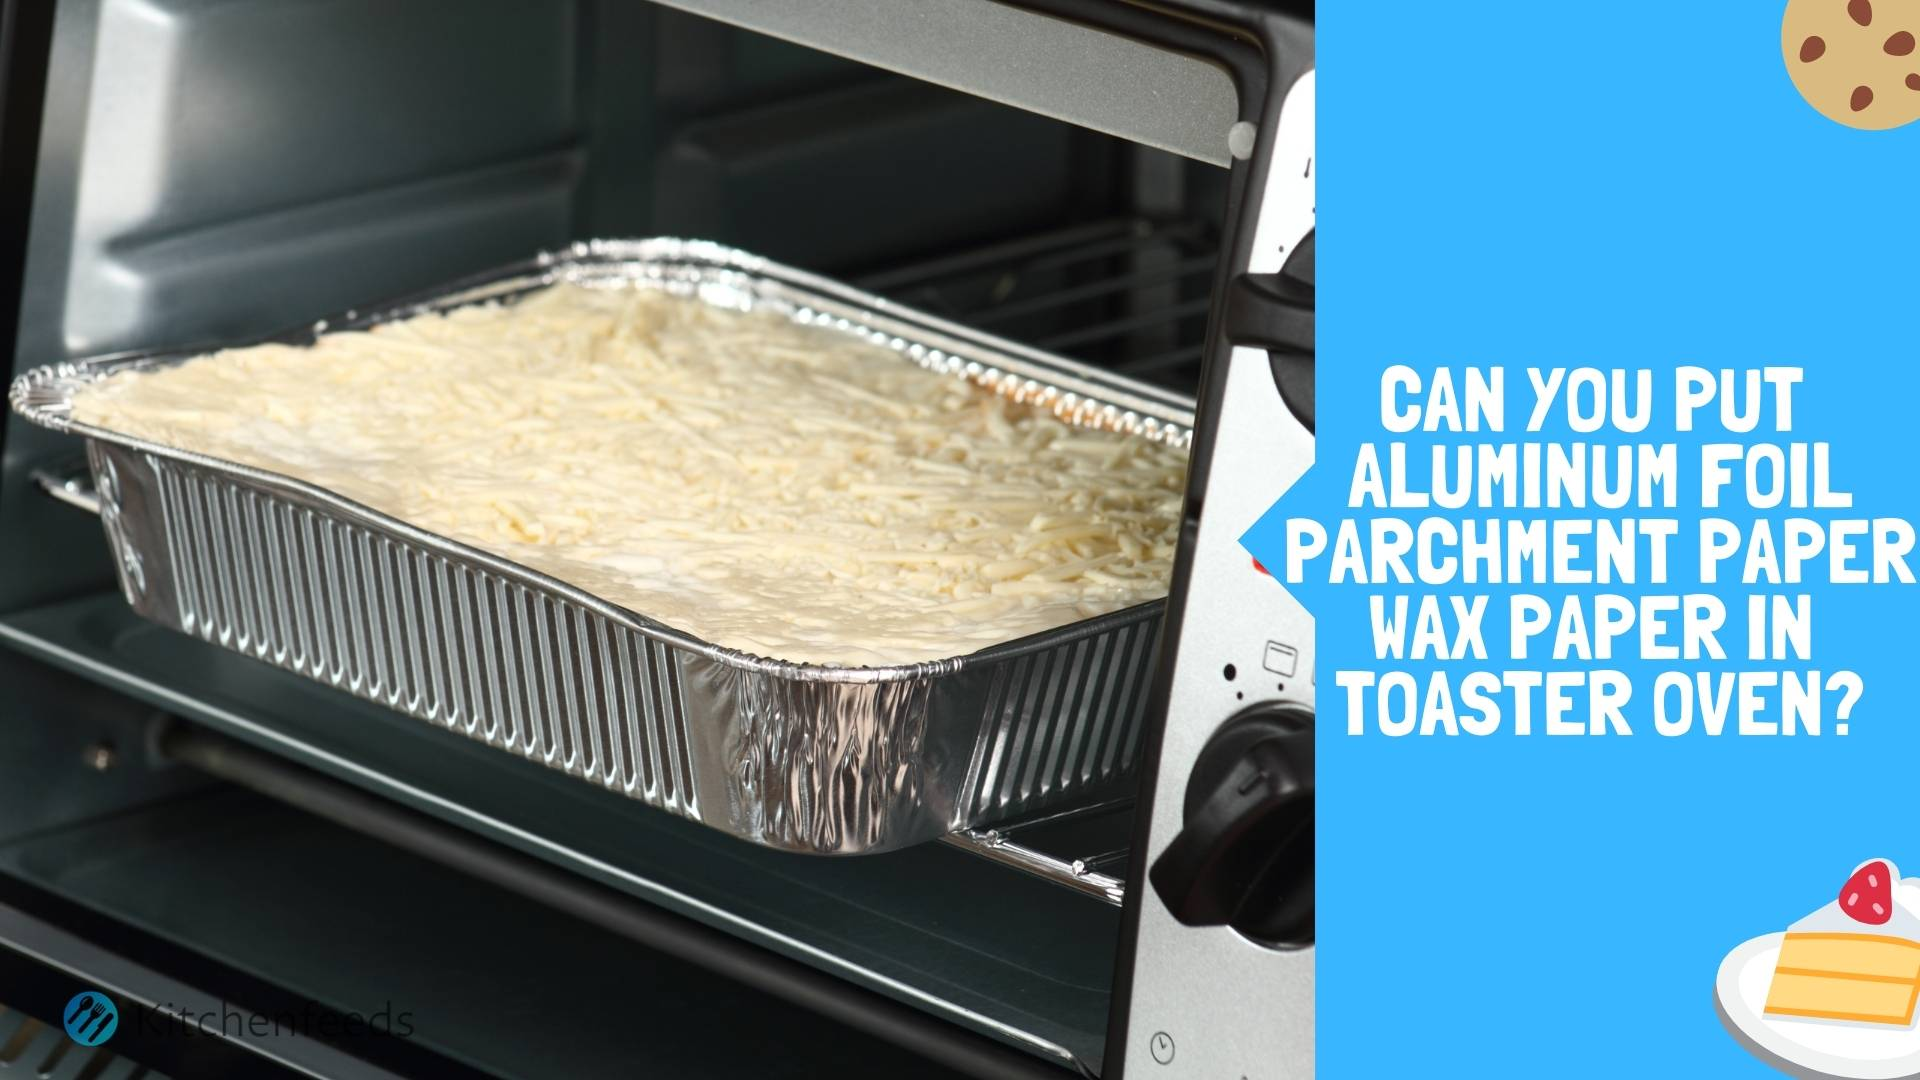 Can You Put Aluminum Foil, Parchment Paper & Wax Paper In The Toaster Oven?